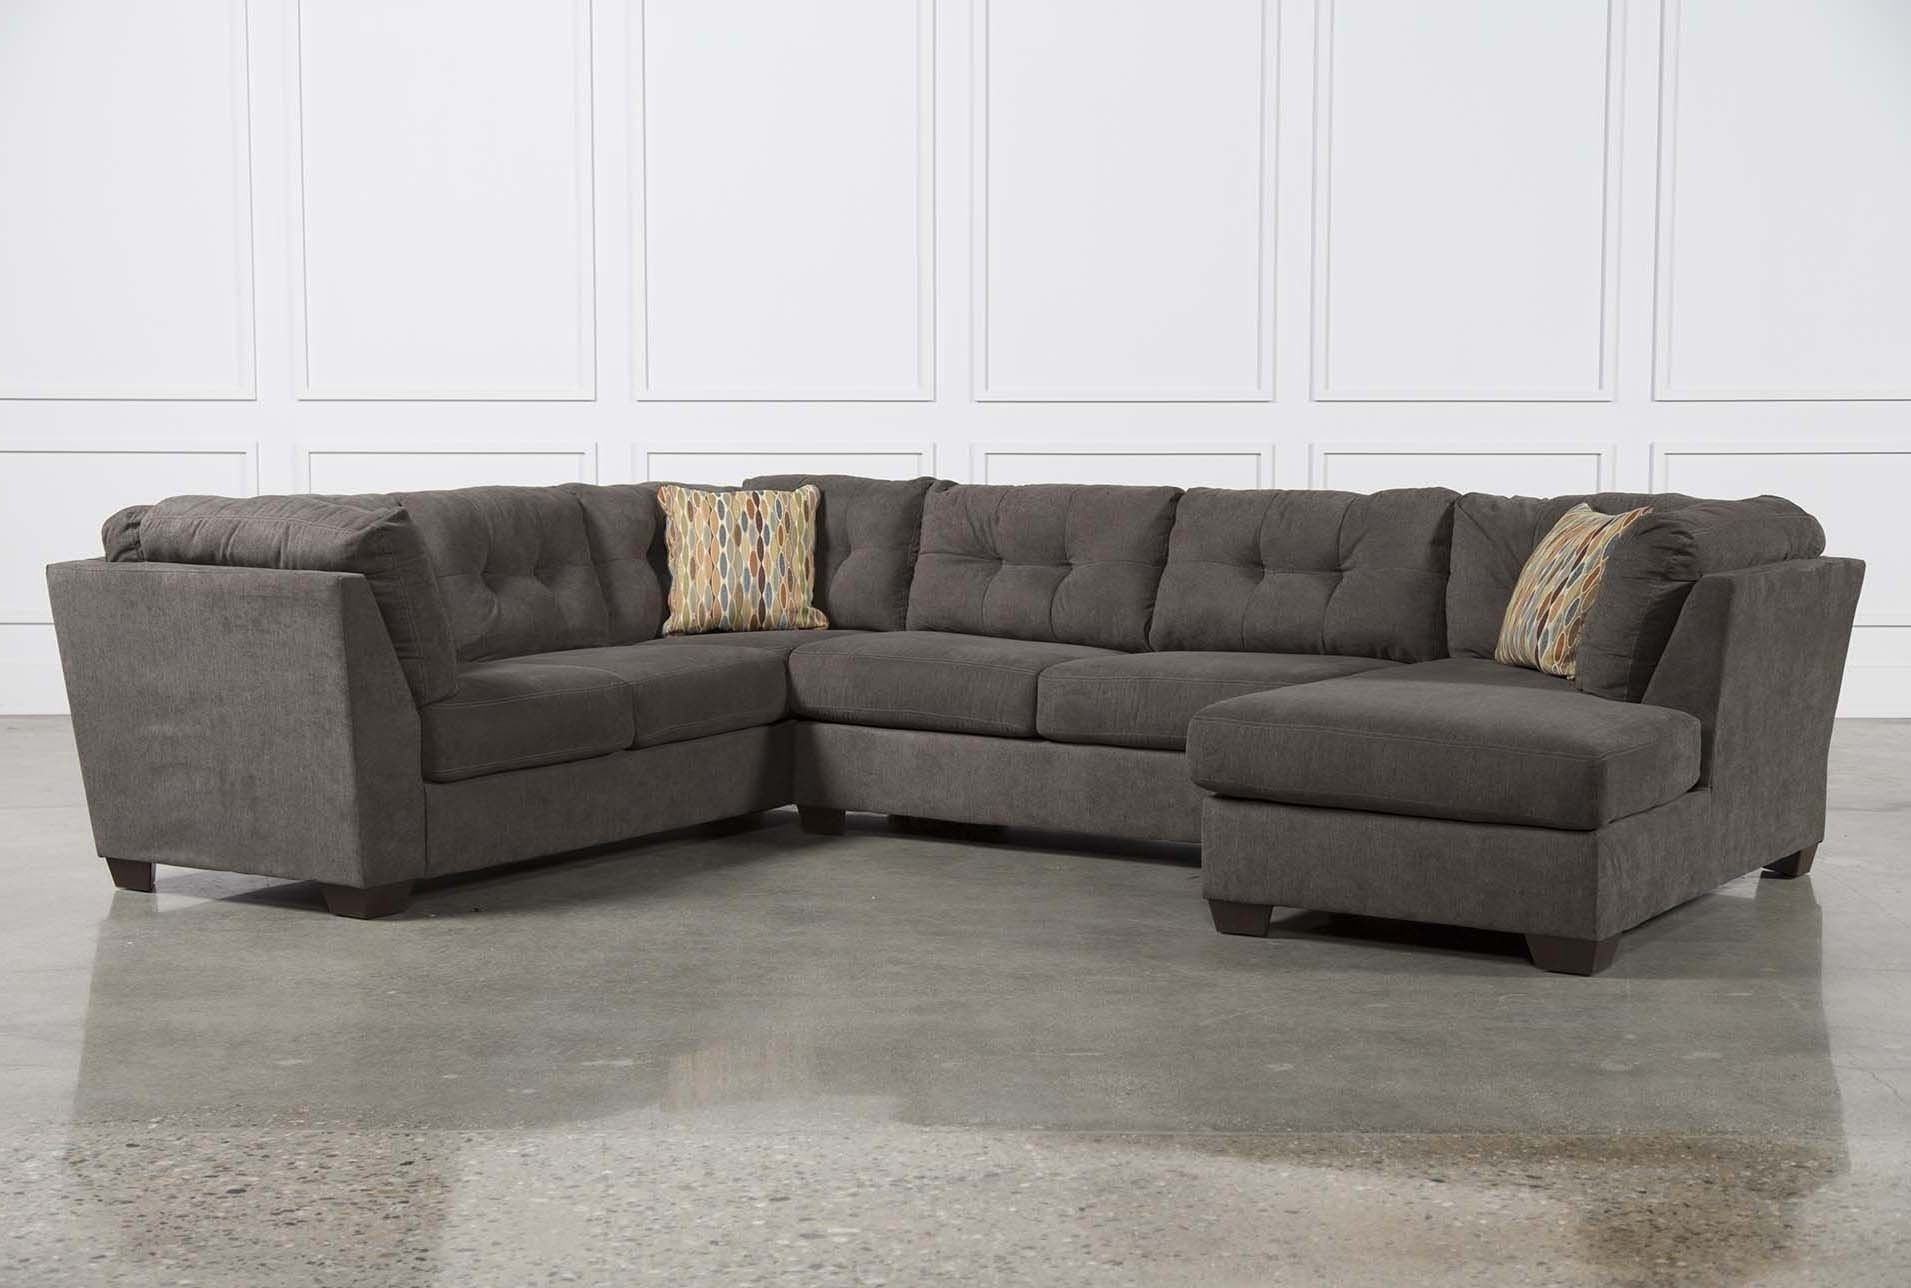 3 Piece Sectional Sleeper Sofas | Sleeper Sofas With Harper Down 3 Piece Sectionals (View 5 of 25)